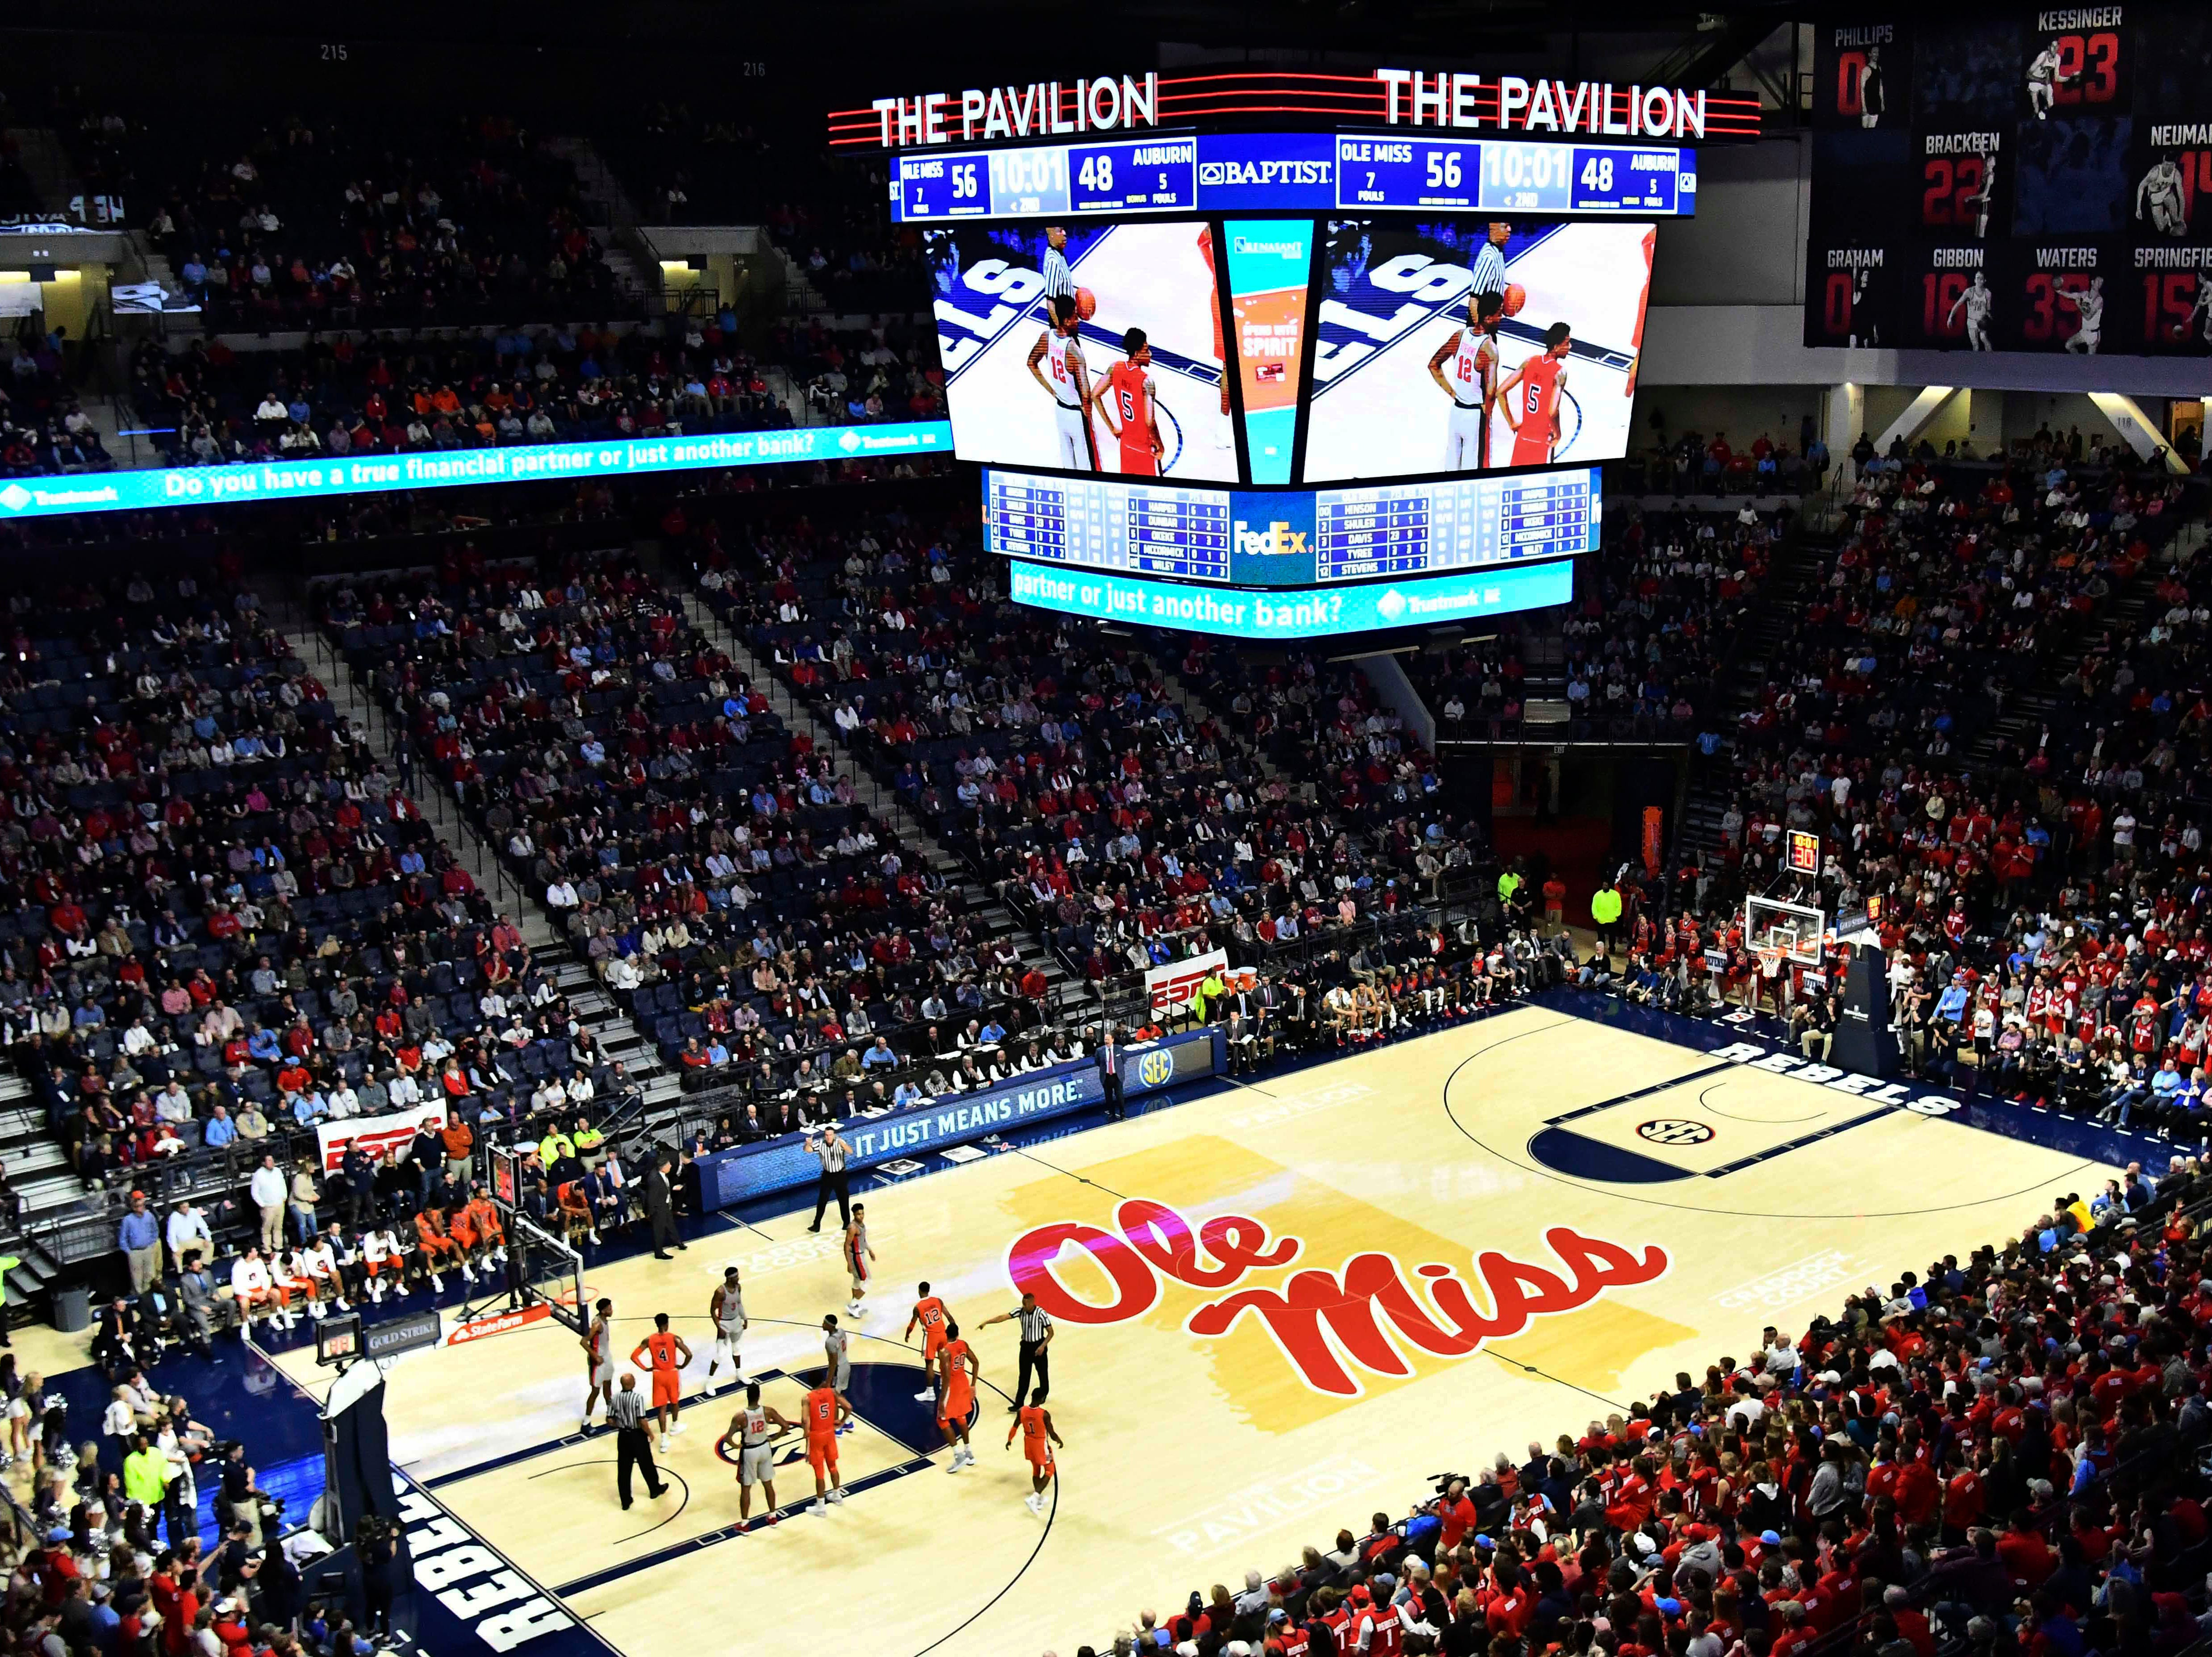 Jan 9, 2019; Oxford, MS, USA; A general overview of the game between the Mississippi Rebels and the Auburn Tigers at The Pavilion at Ole Miss. Mandatory Credit: Matt Bush-USA TODAY Sports